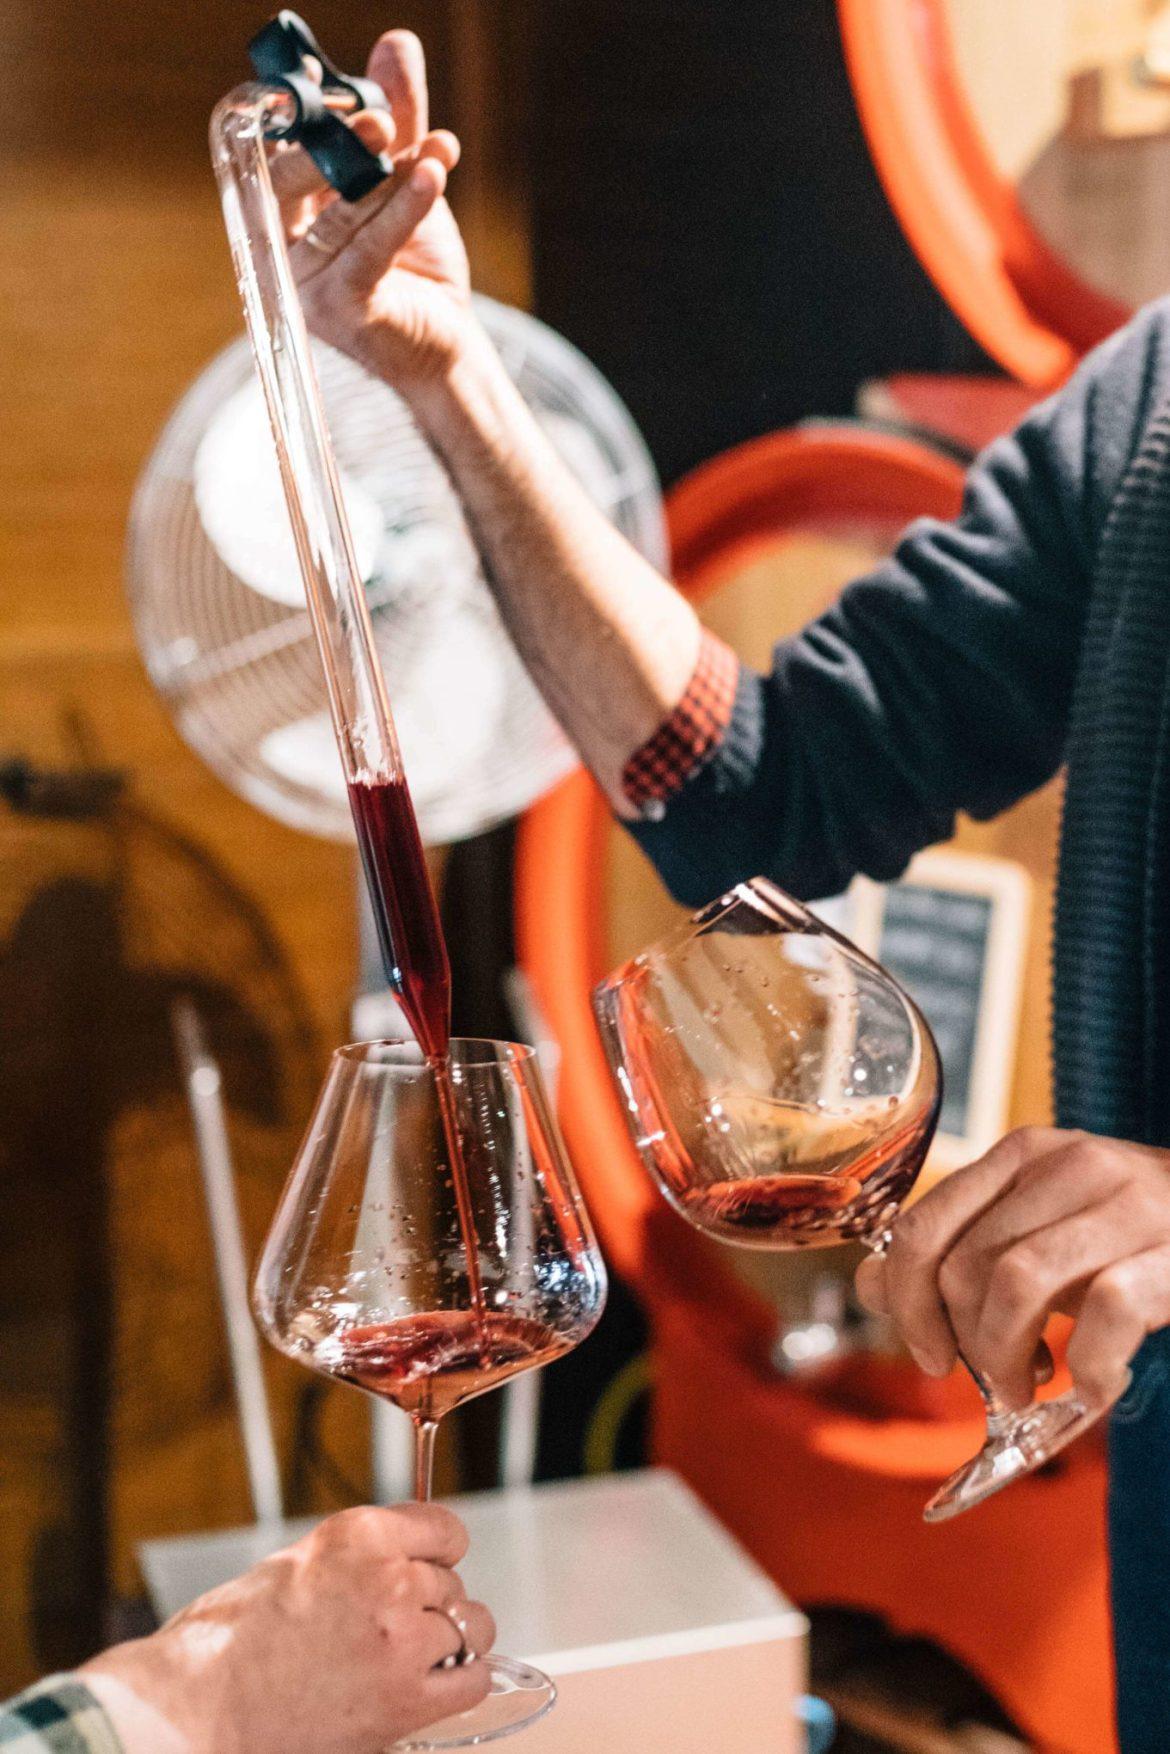 Taste Barolo wine in Piedmont. Winemaker Mario Fontana gives us a barrel tasting of his traditional and natural wine in Piedmont Italy